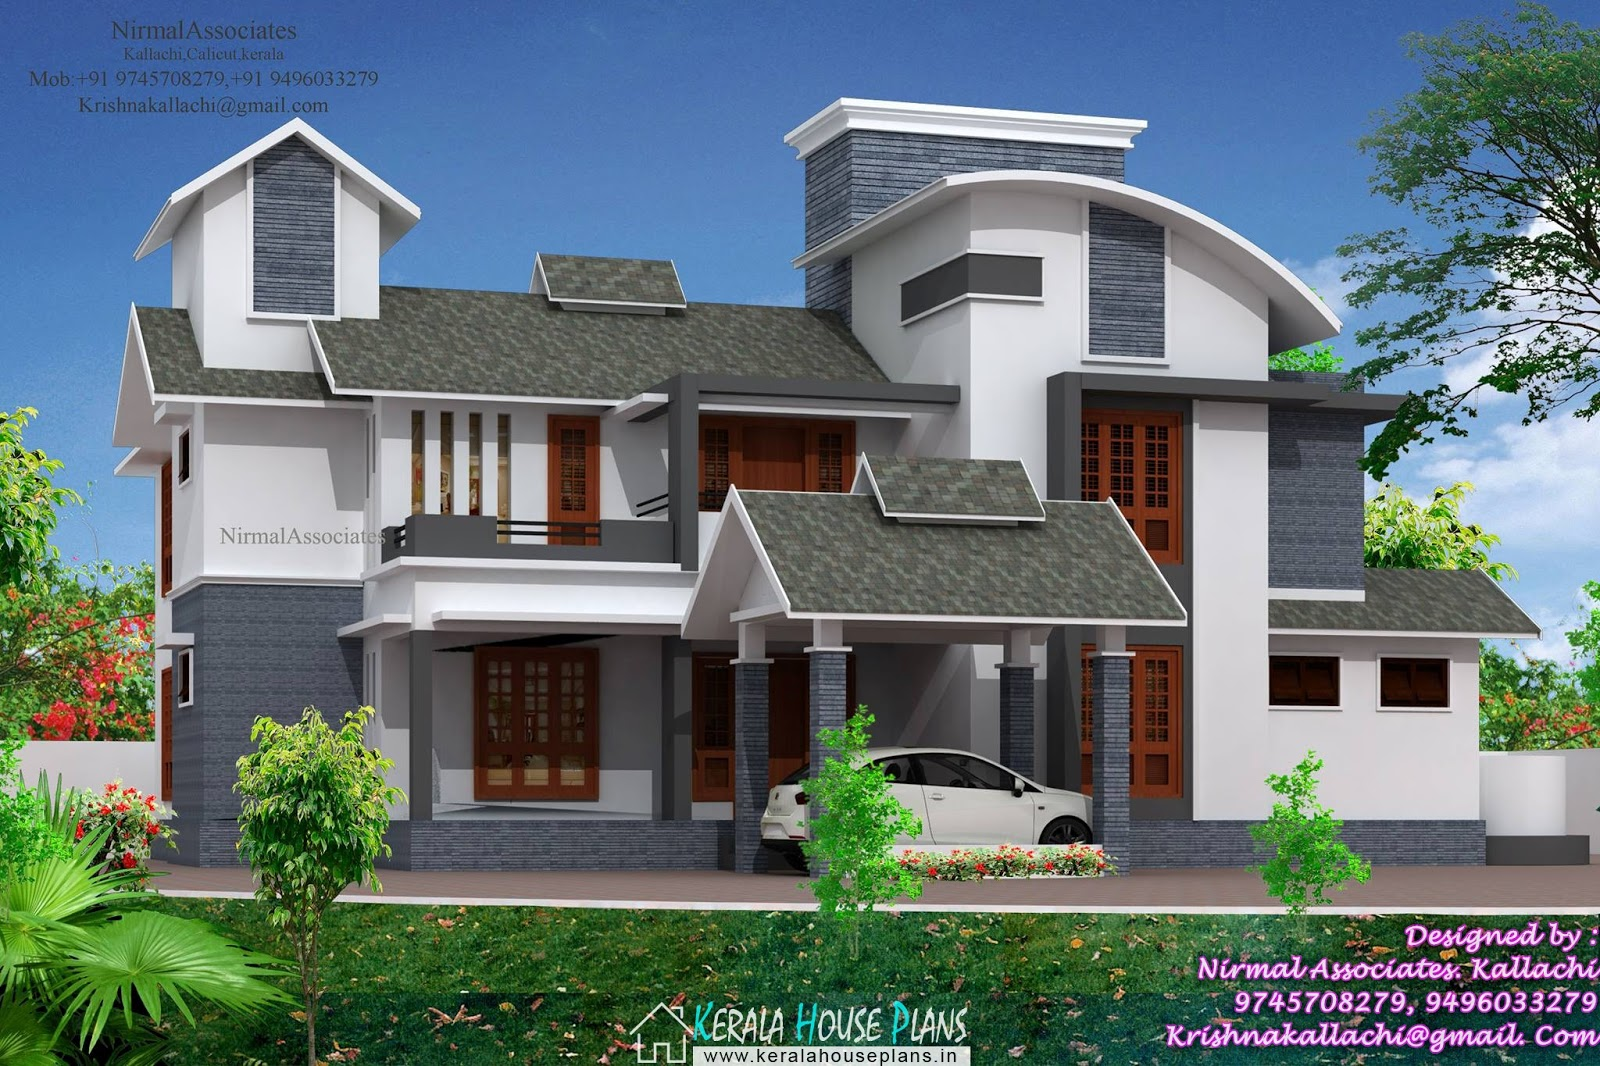 Kerala house plans designs floor plans and elevation for Kerala house plans and elevations